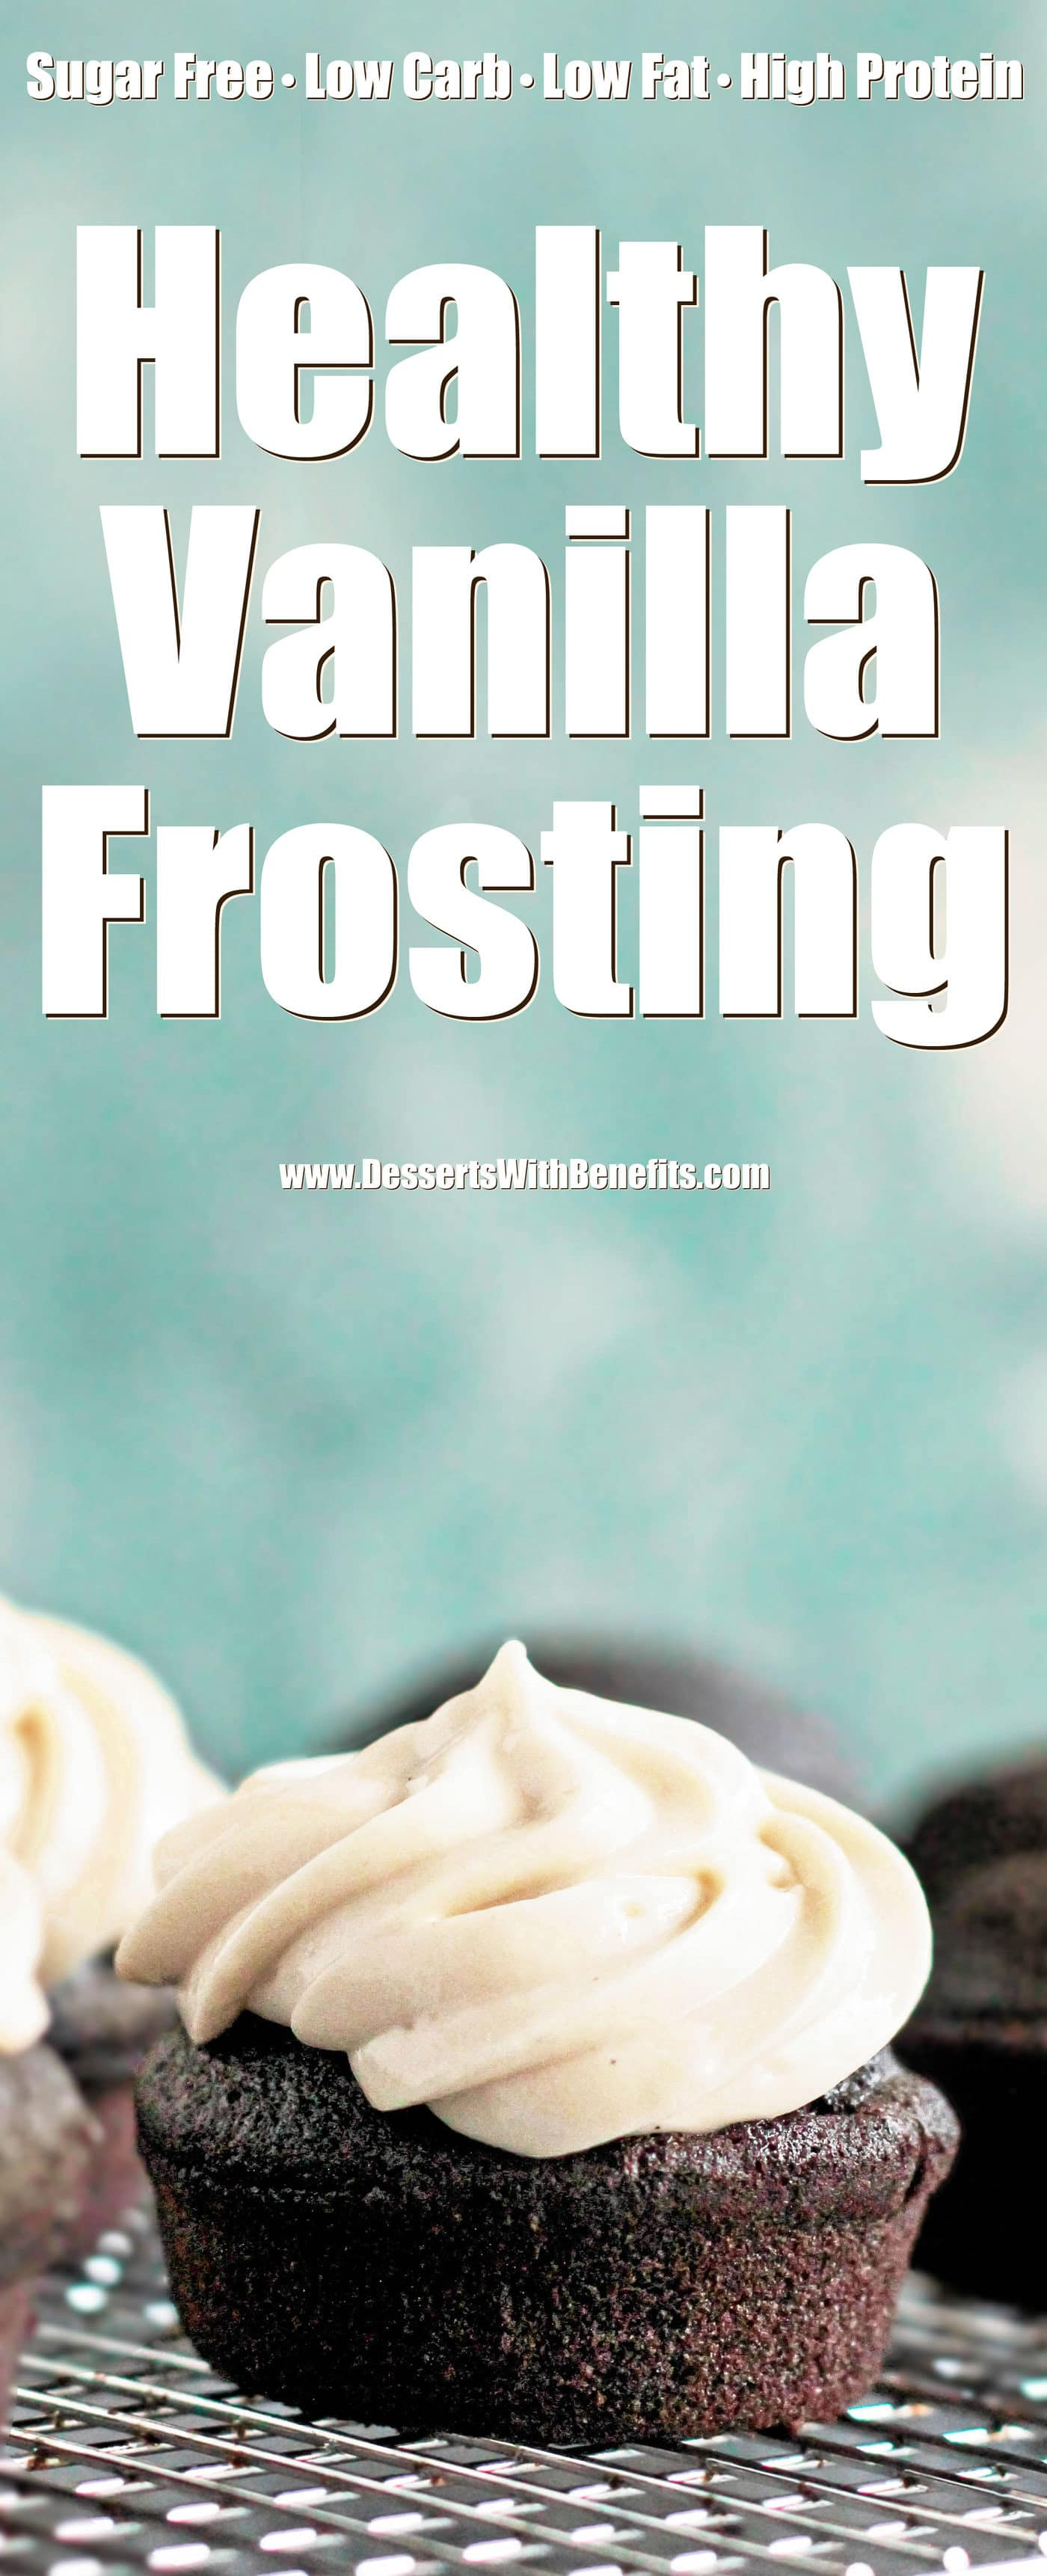 These Vanilla Protein Icing and Vanilla Protein Frosting recipes are perfect for EVERYTHING. They're sweet, simple, and delicious, but without the white sugar, butter, hydrogenated shortening (dangerous trans fats), and artificial flavorings. Just as good as the original, but made actually good for you! It's hard to believe these are sugar free, low carb, low fat, high protein, and gluten free!